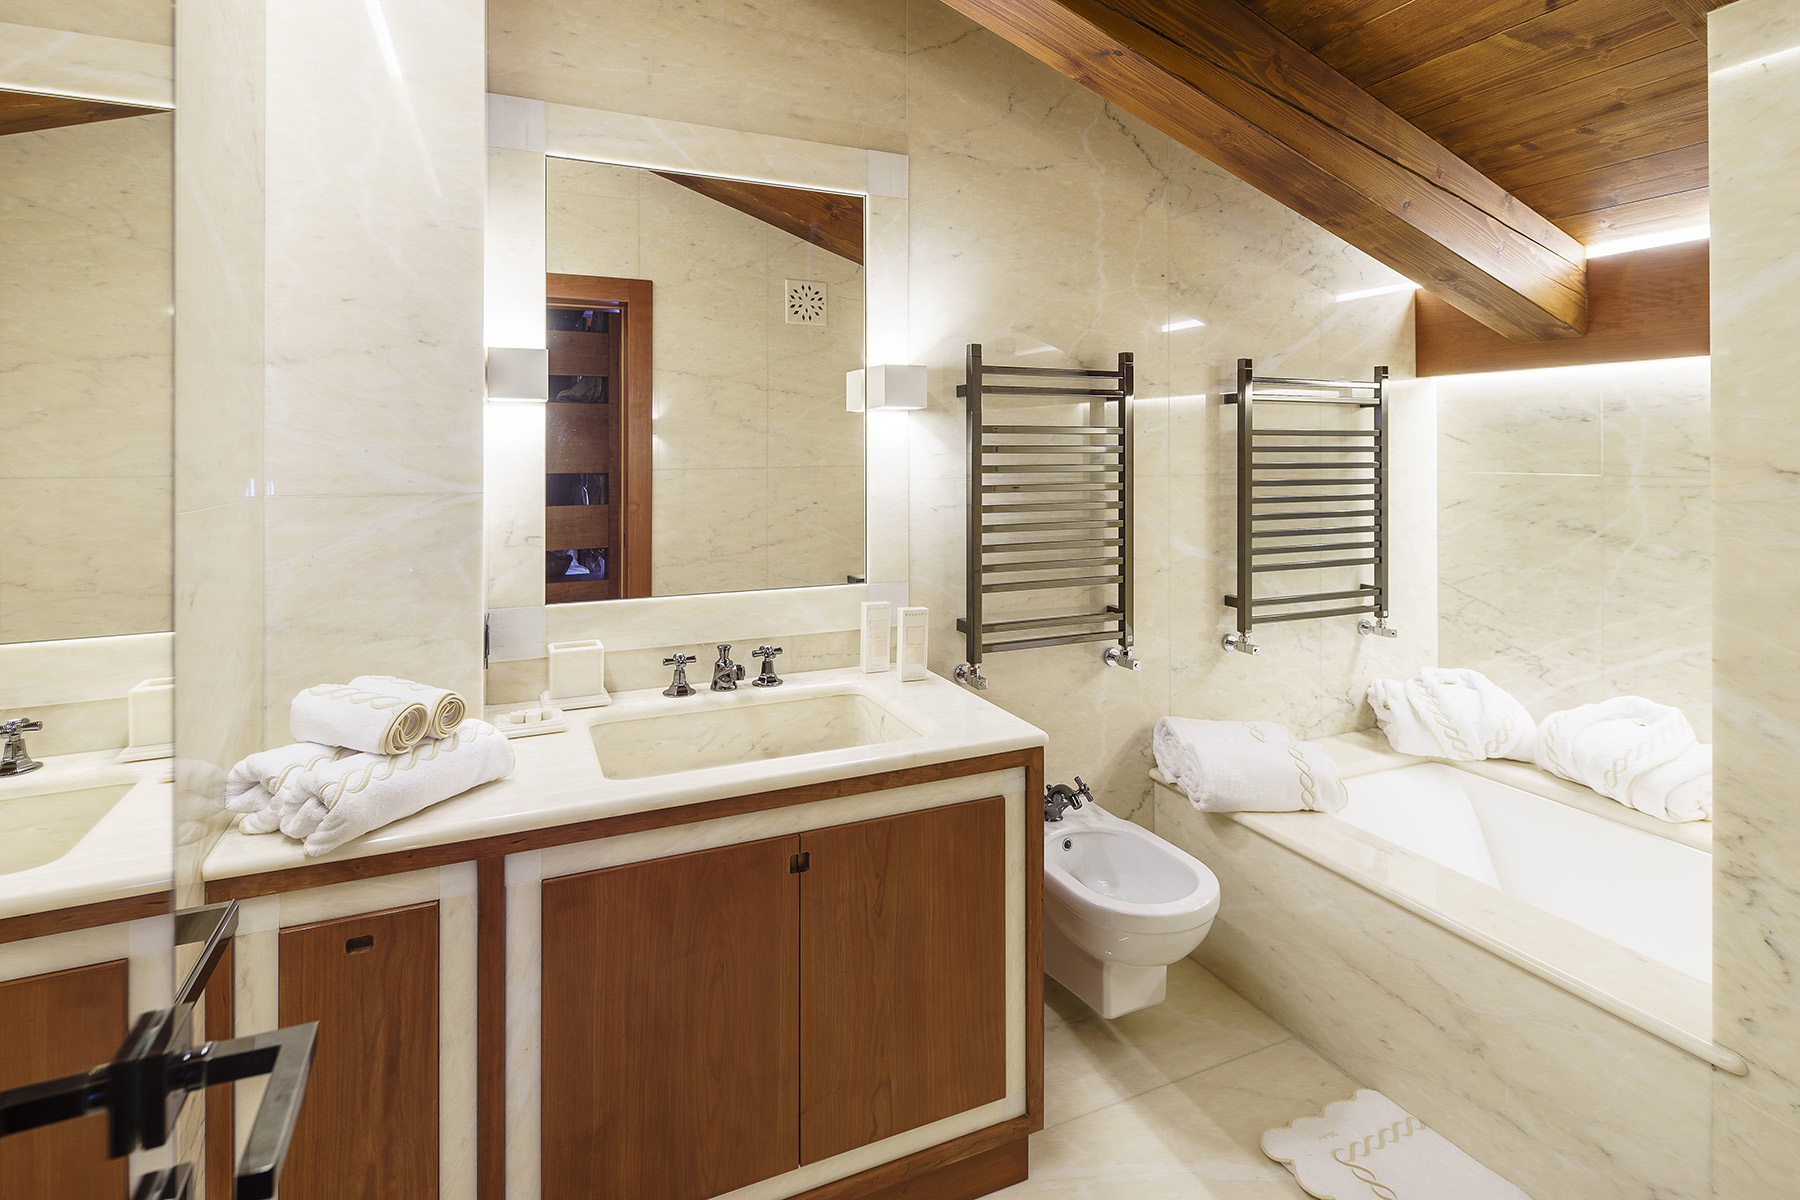 Additional photo for property listing at Luxury chalet in Cortina d'Ampezzo Cortina D'Ampezzo, Belluno Italien